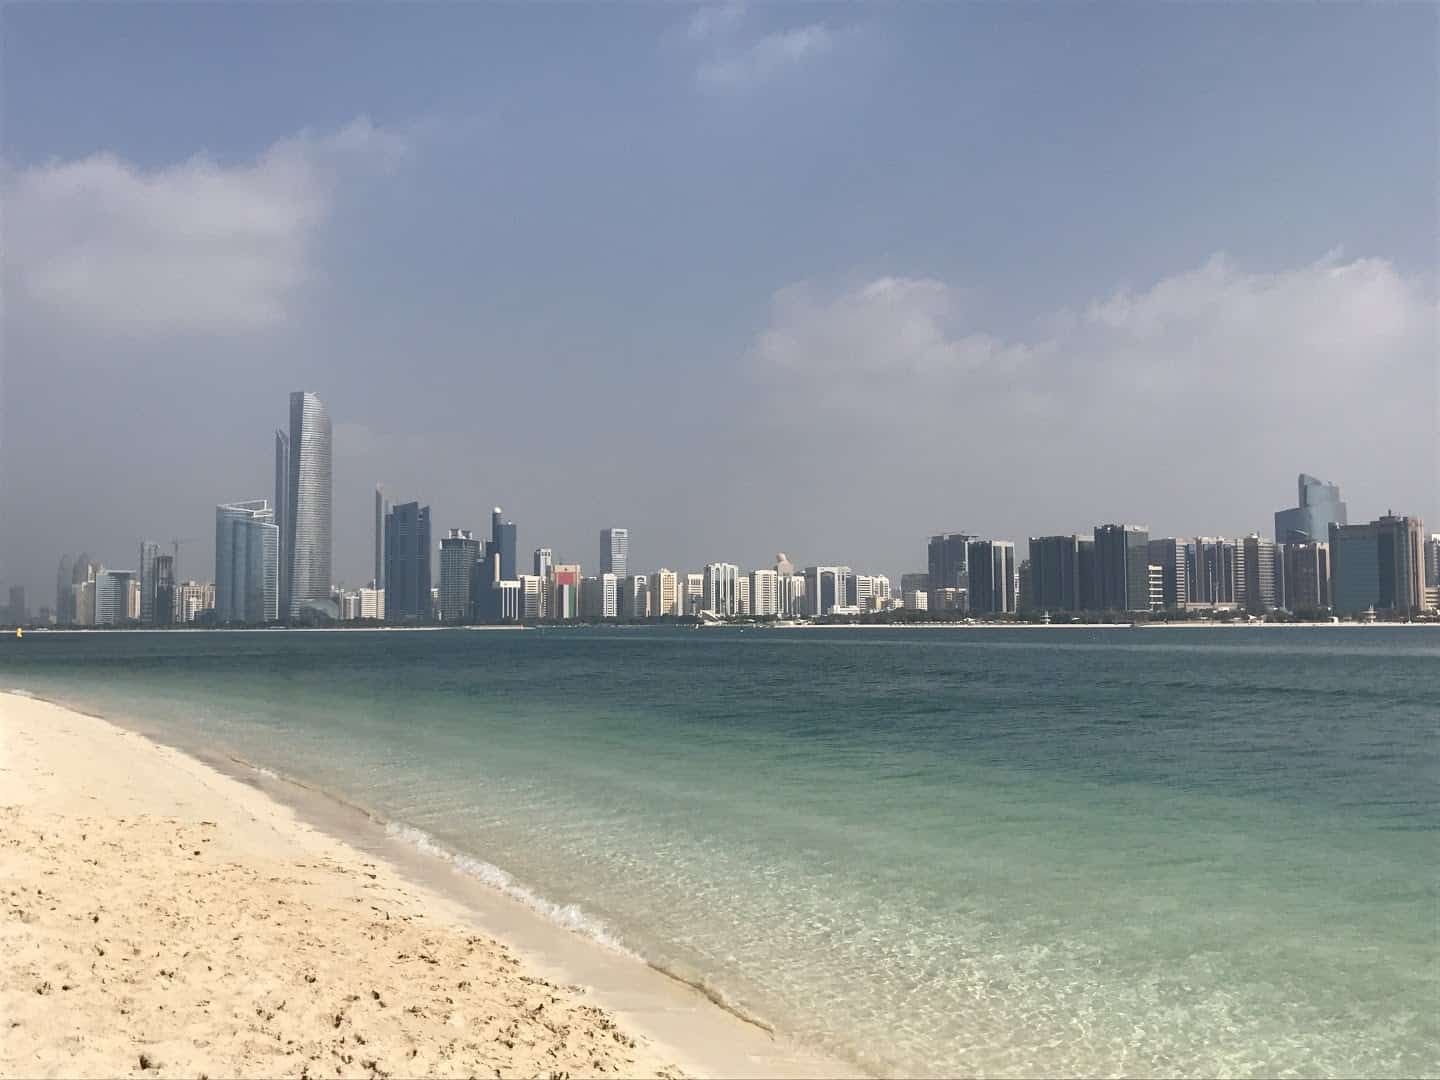 Abu Dhabi - The pearl of the UAE